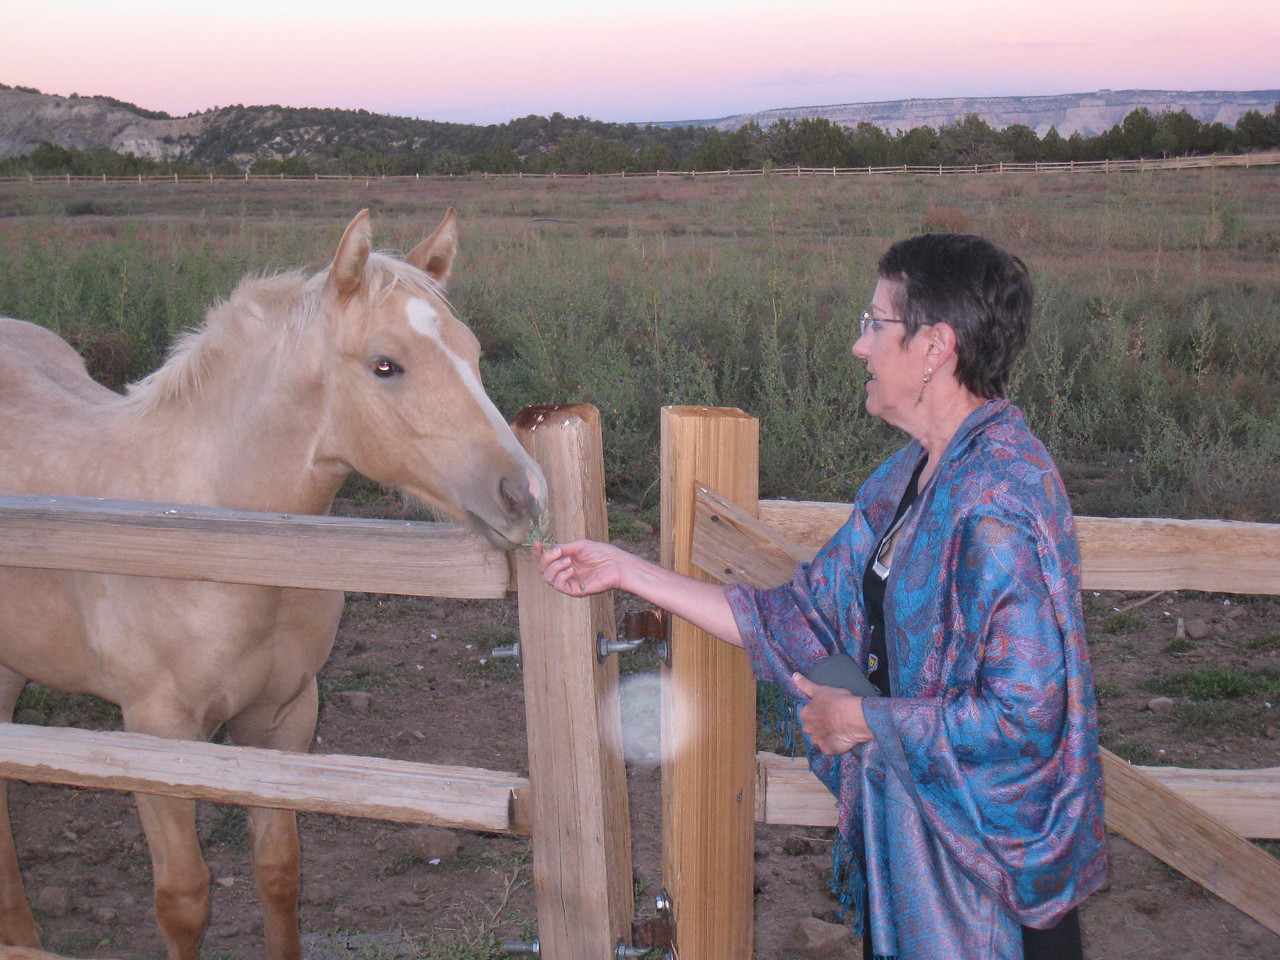 Filly and Lois, Zion Mountain Ranch